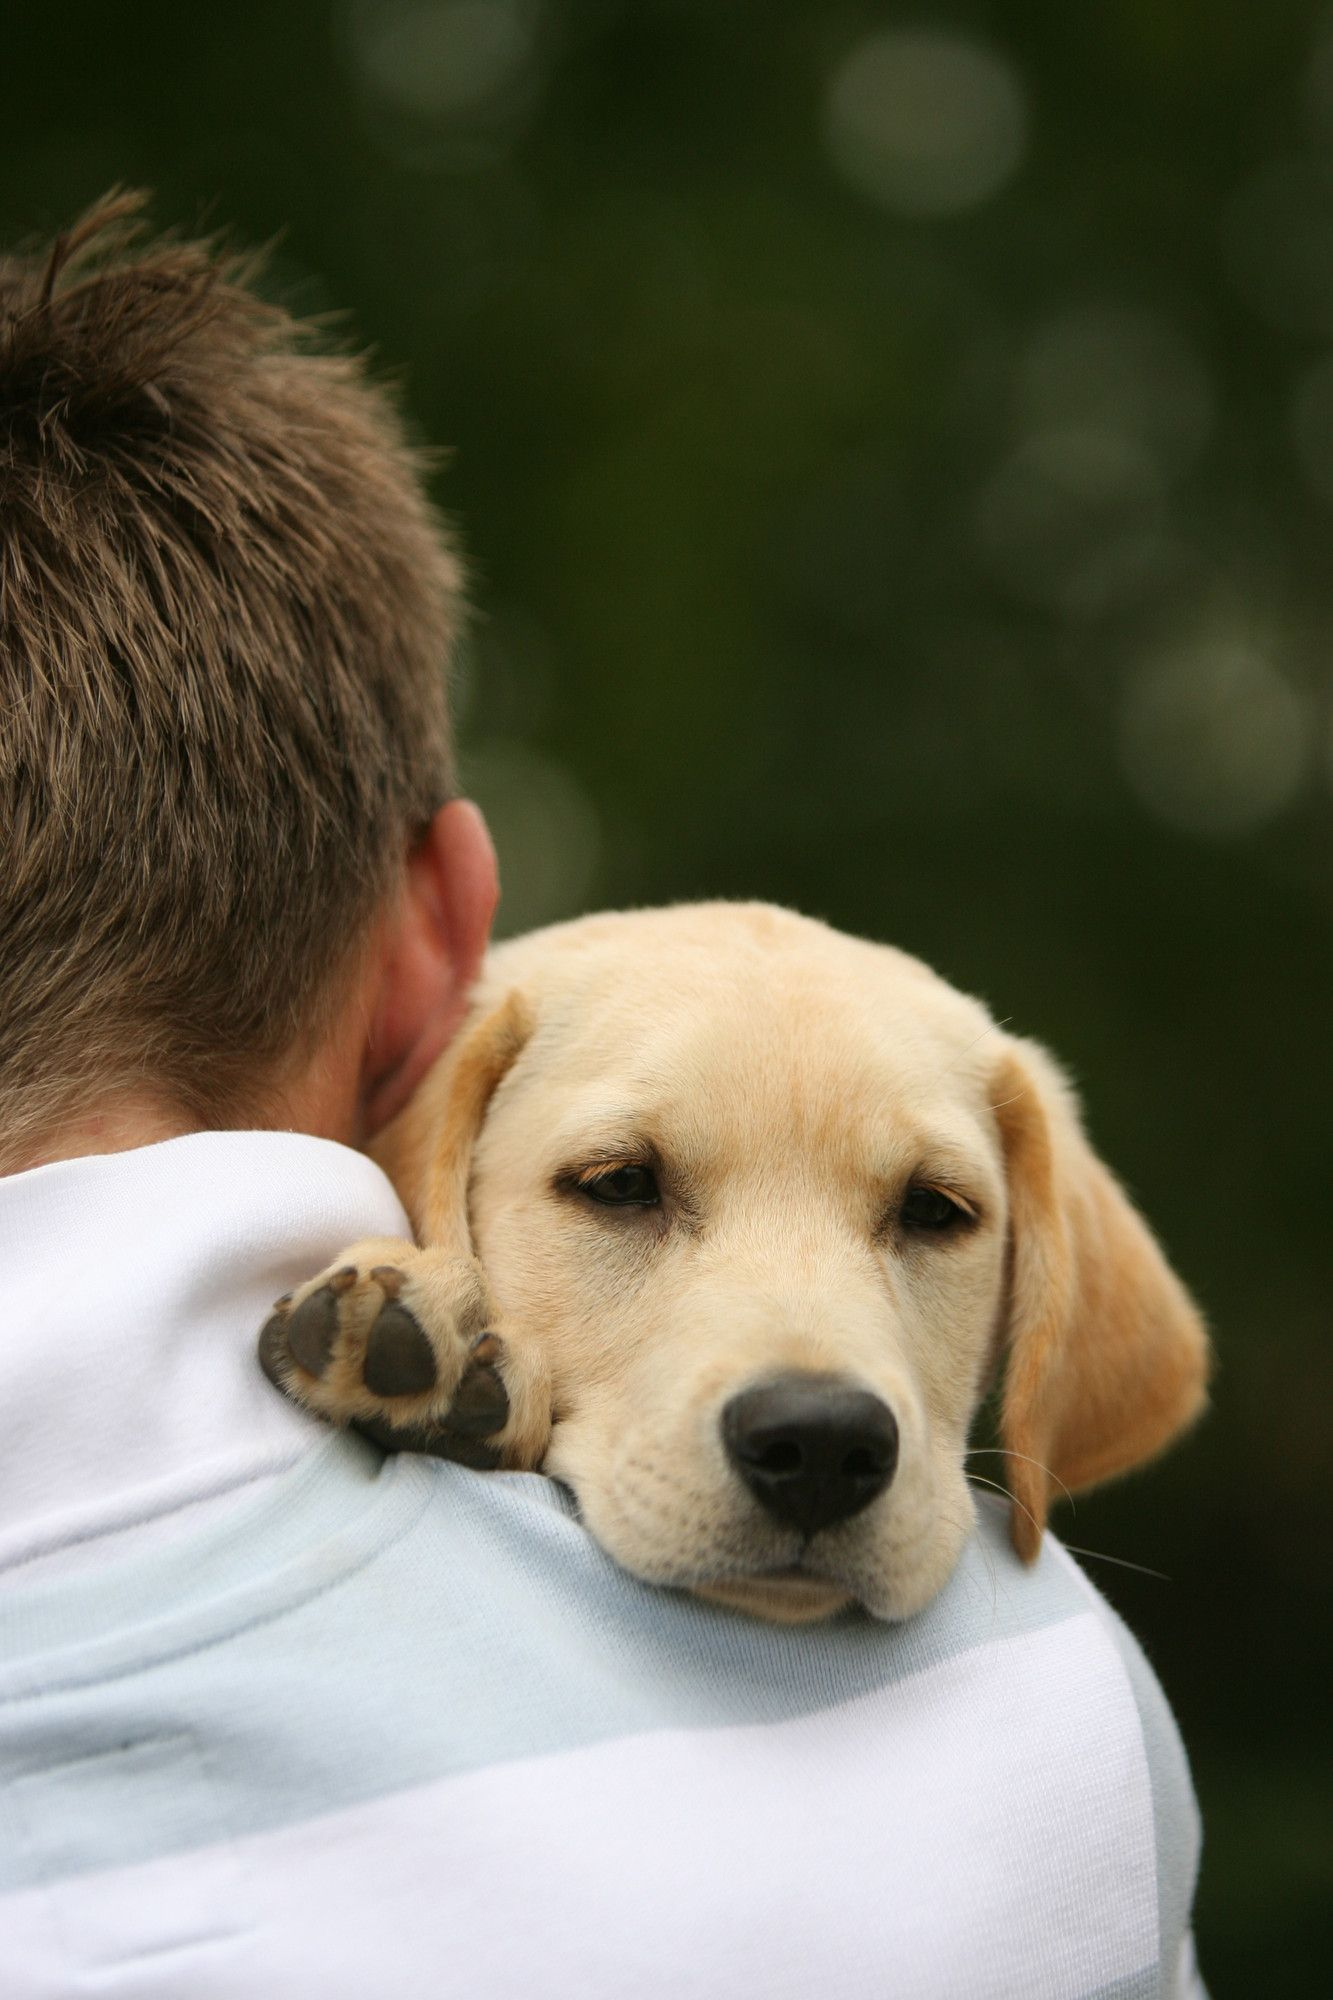 Caring for your puppy Puppies, Puppy socialization, Dog